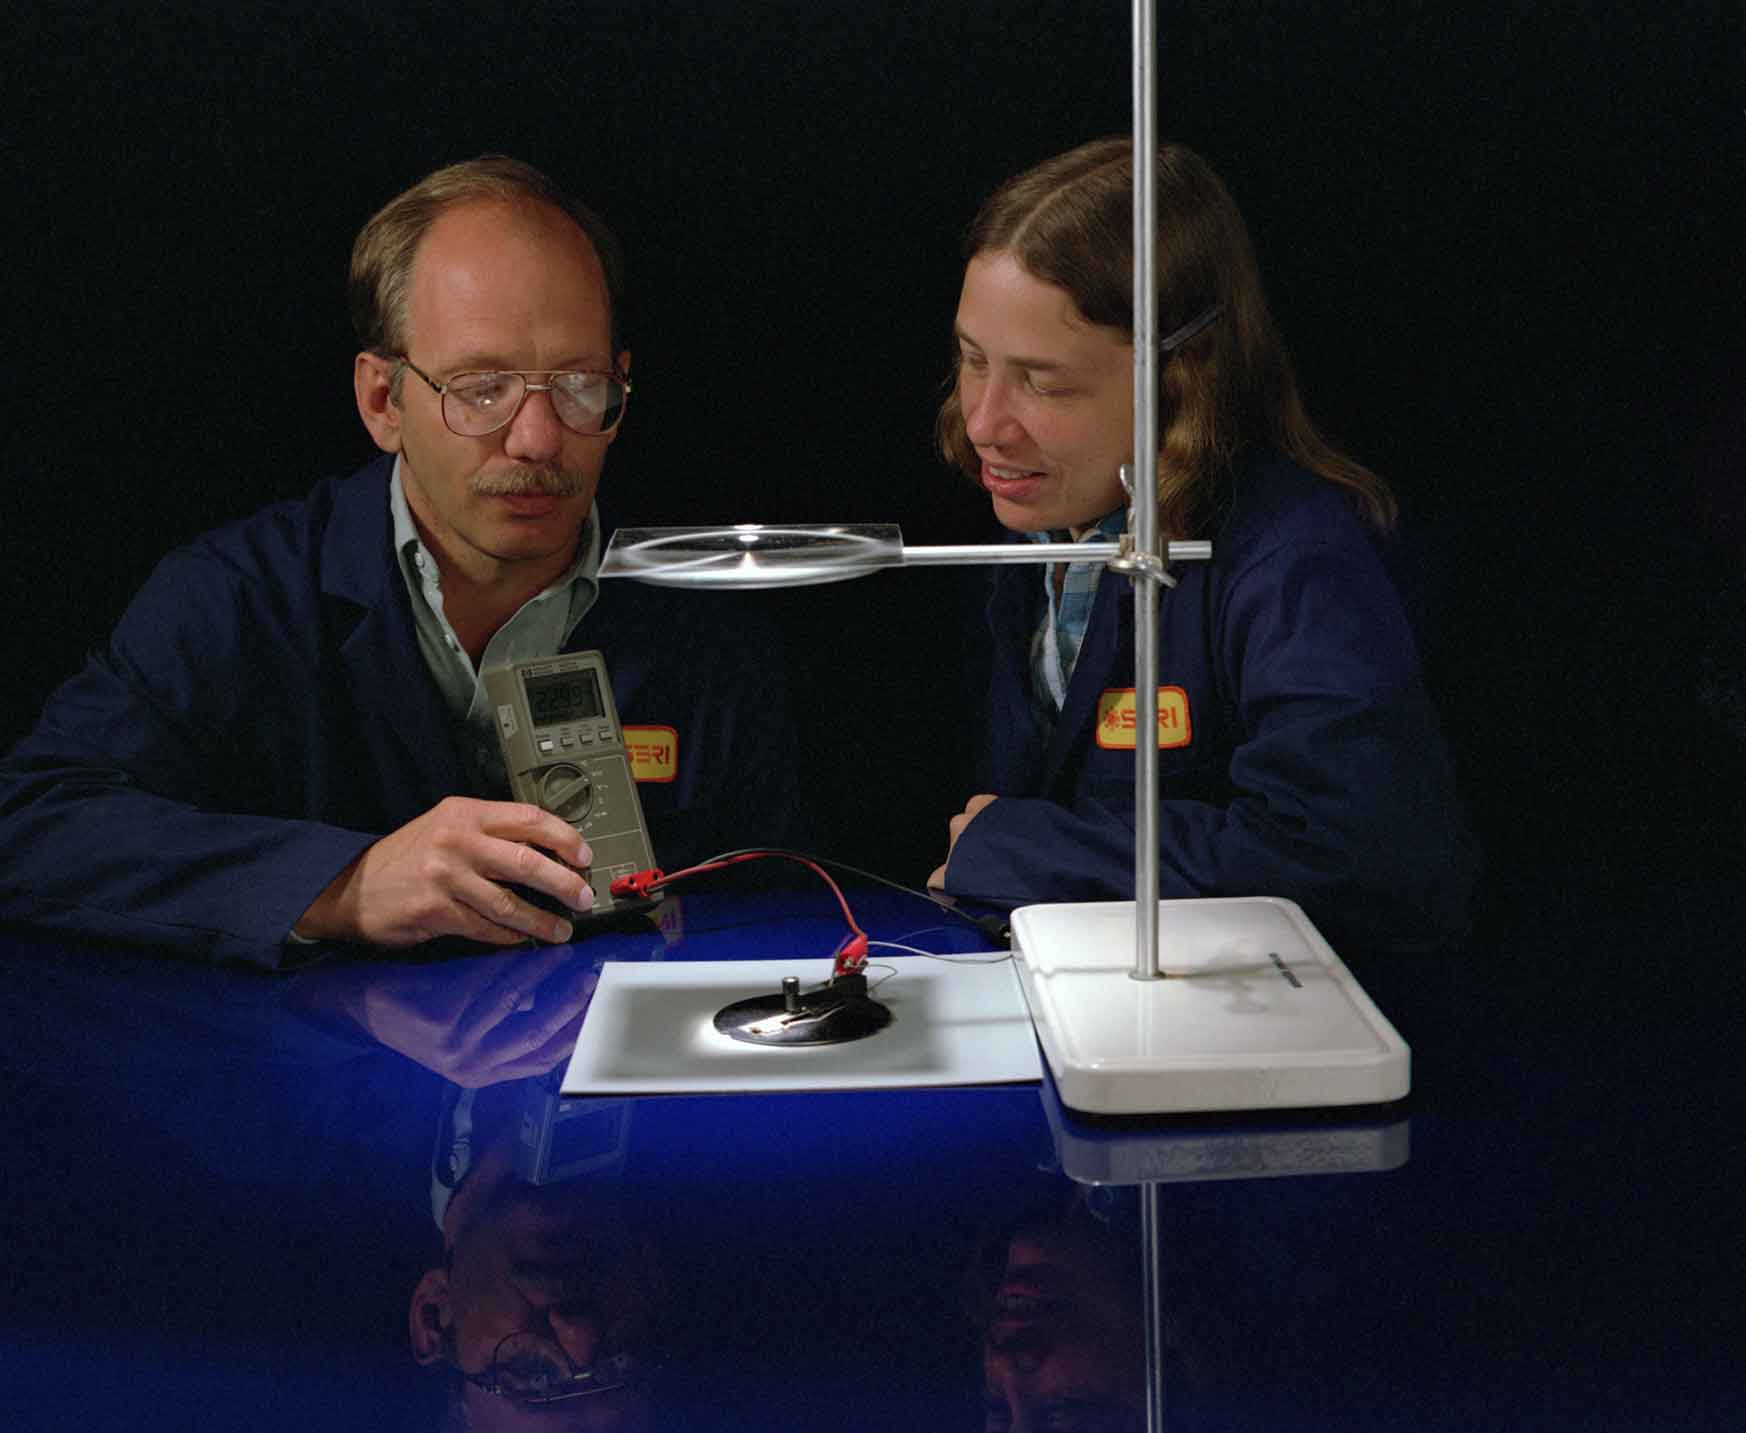 A man and woman conduct an experiment.